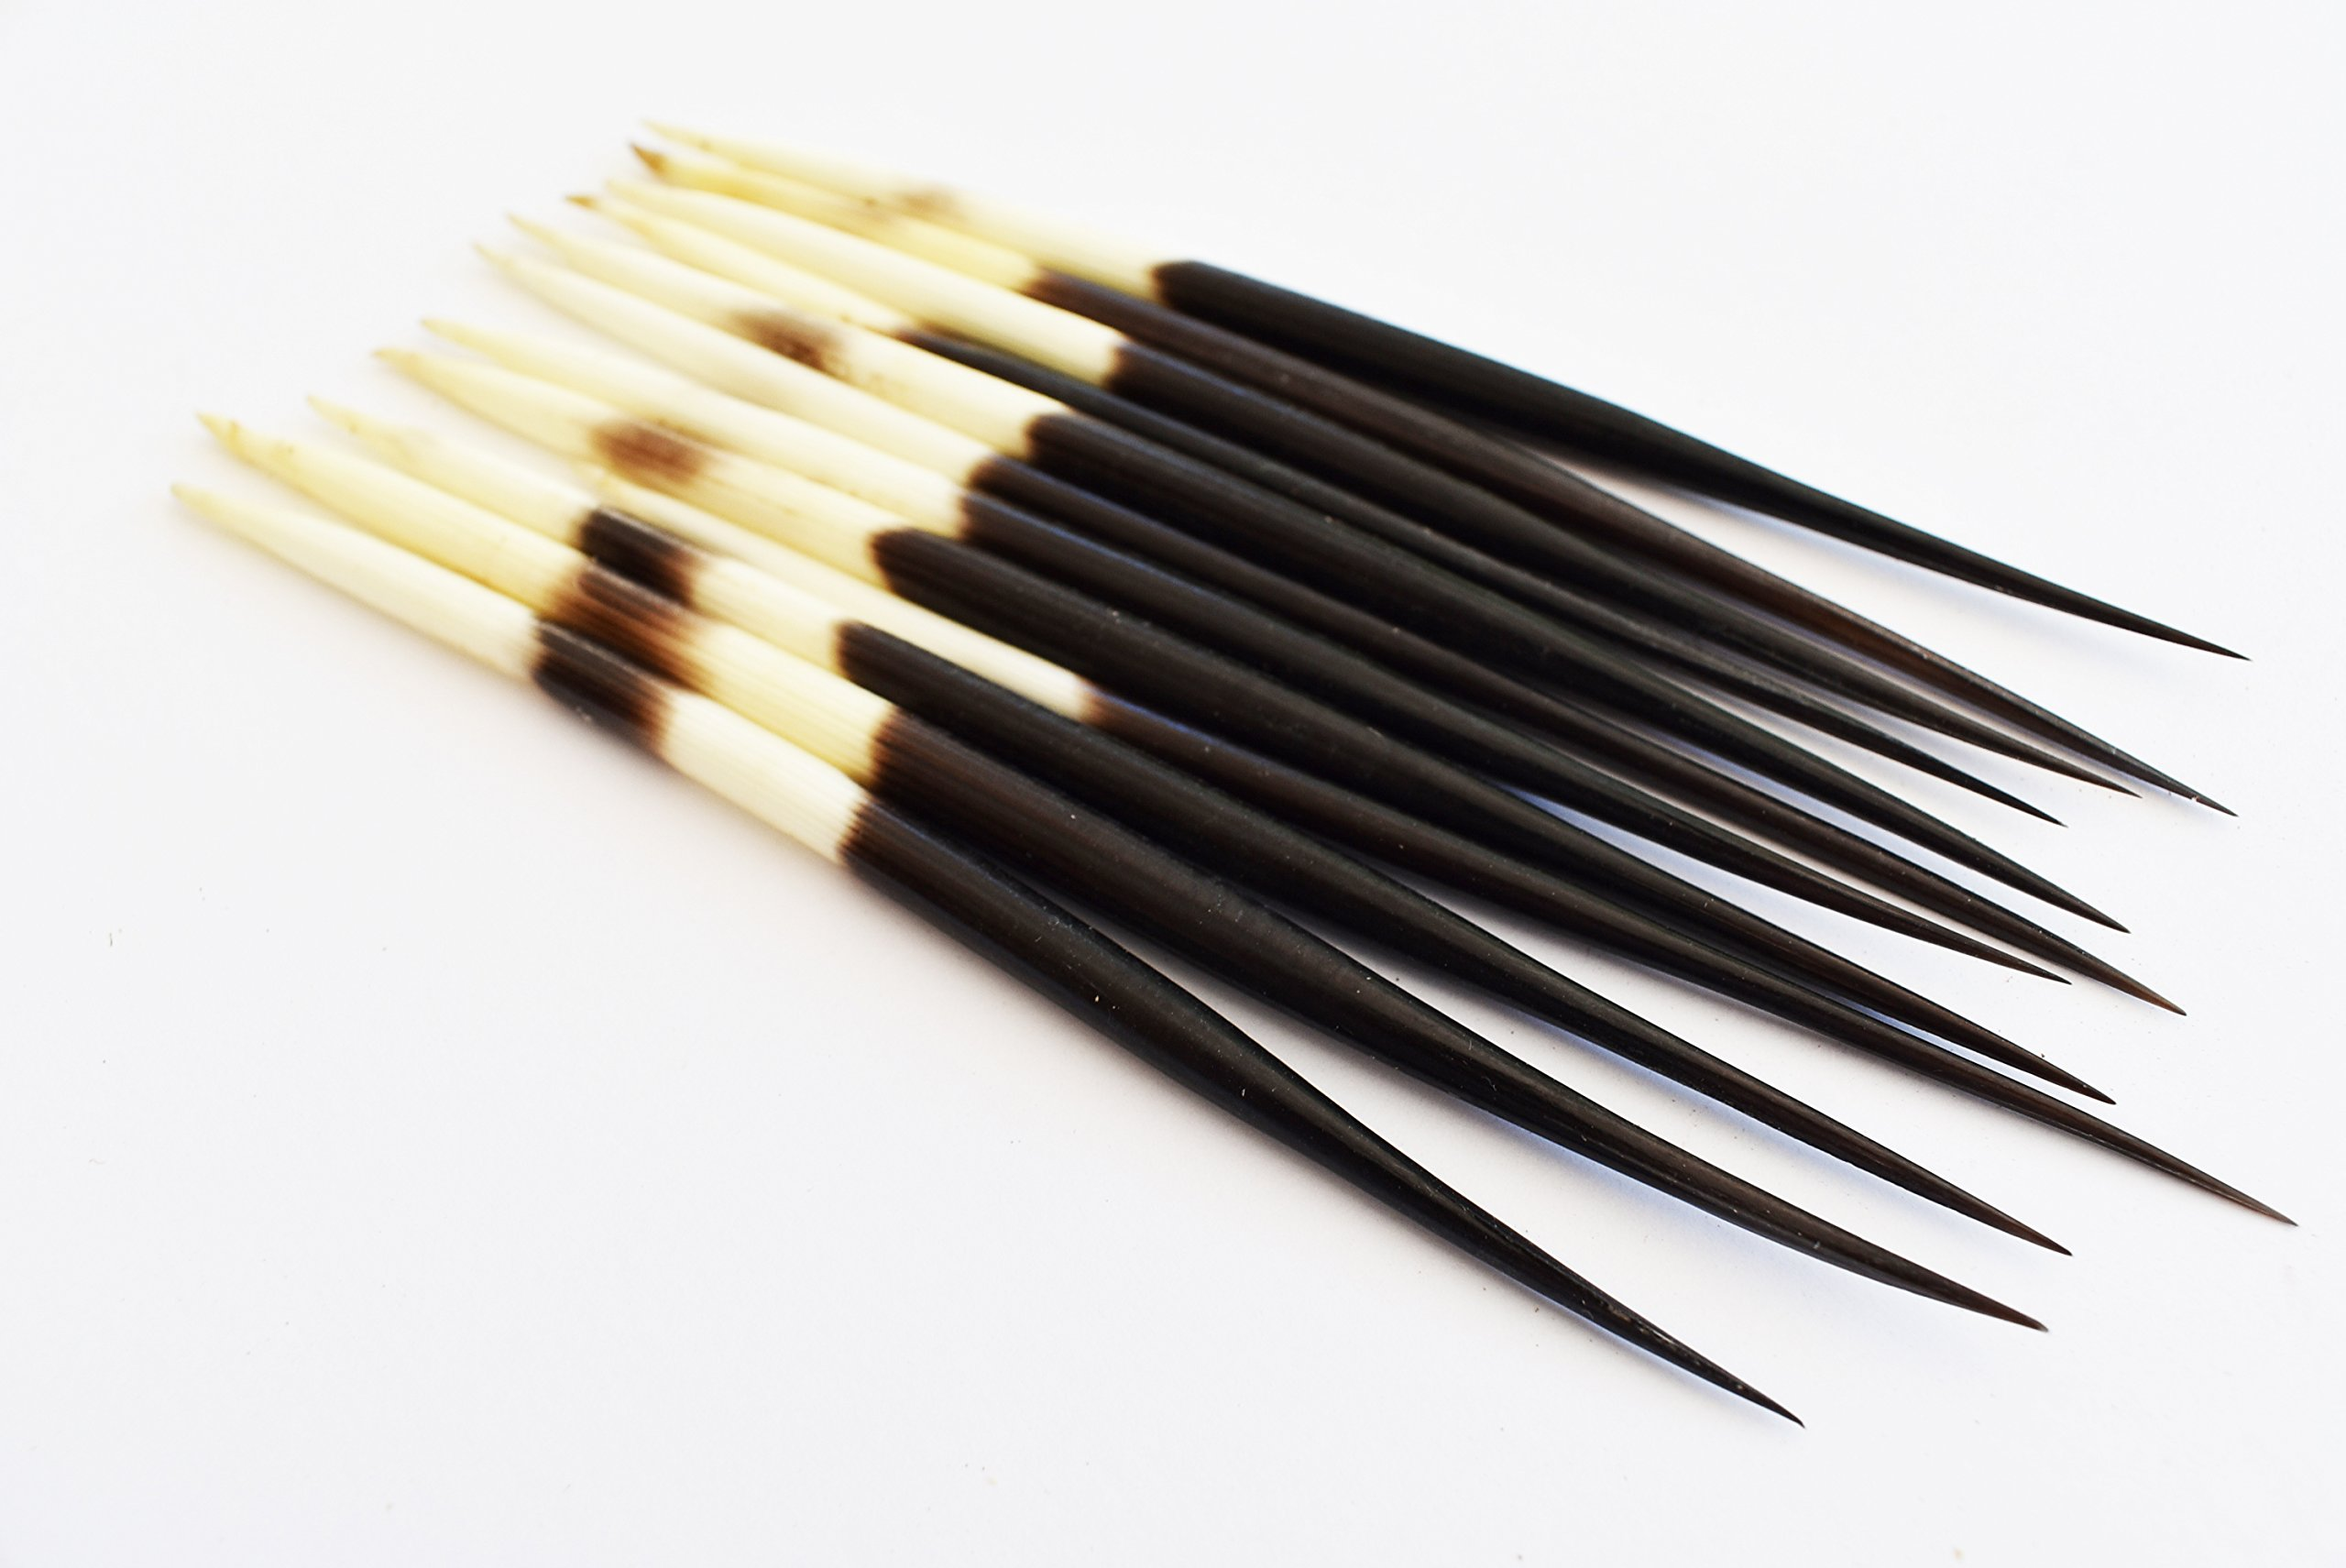 Set of 12 African Porcupine Quills (5-7'') Handpicked Decor Hobby Indian Crafts Hair Sticks by Florida Shells and Gifts